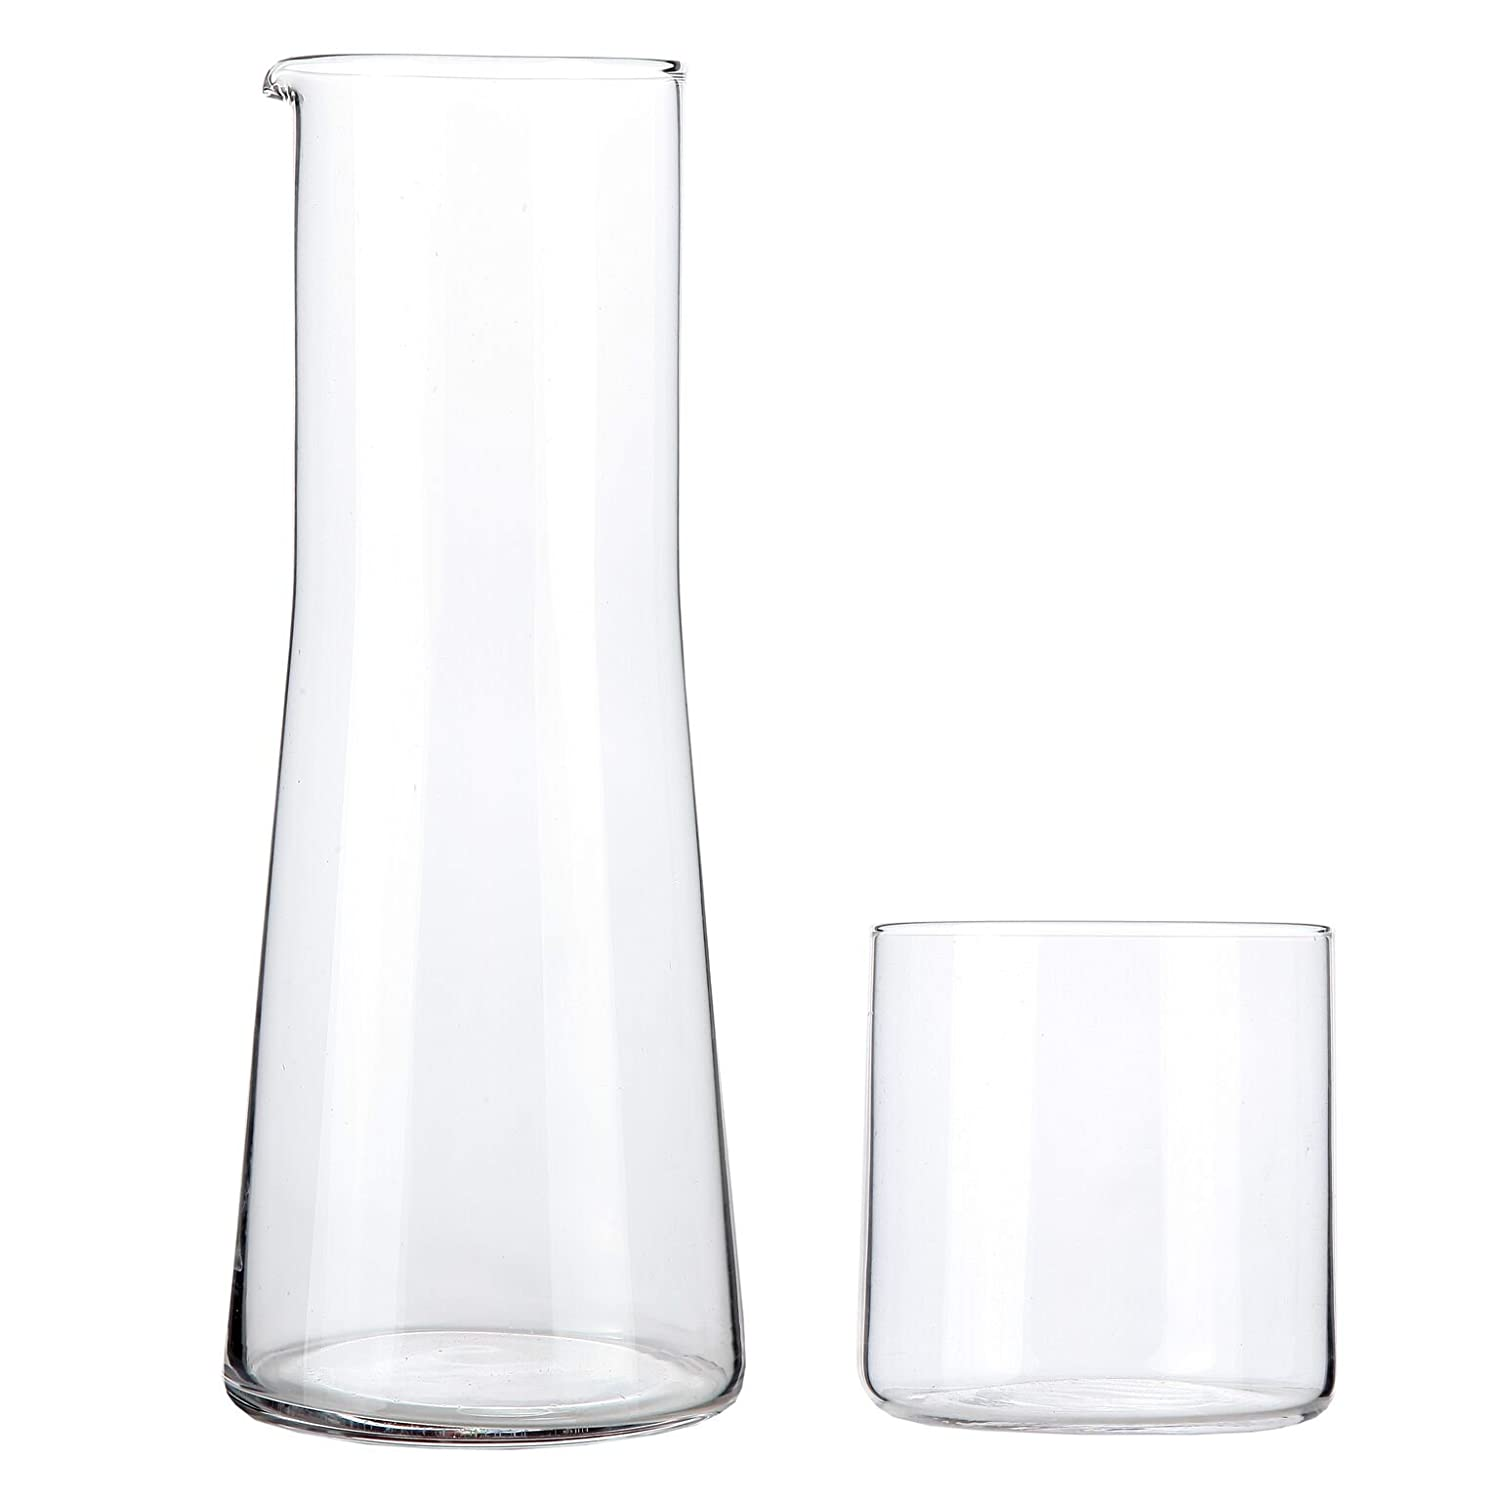 Lily's Home Bedside Night Water Carafe with Tumbler Glass, Easy Pour Spout for No-Mess Use in Bedroom, Bathroom, or Kitchen, Use Cup as Lid, Lead Free Glass (16 Ounces) Lily's Home SW1032